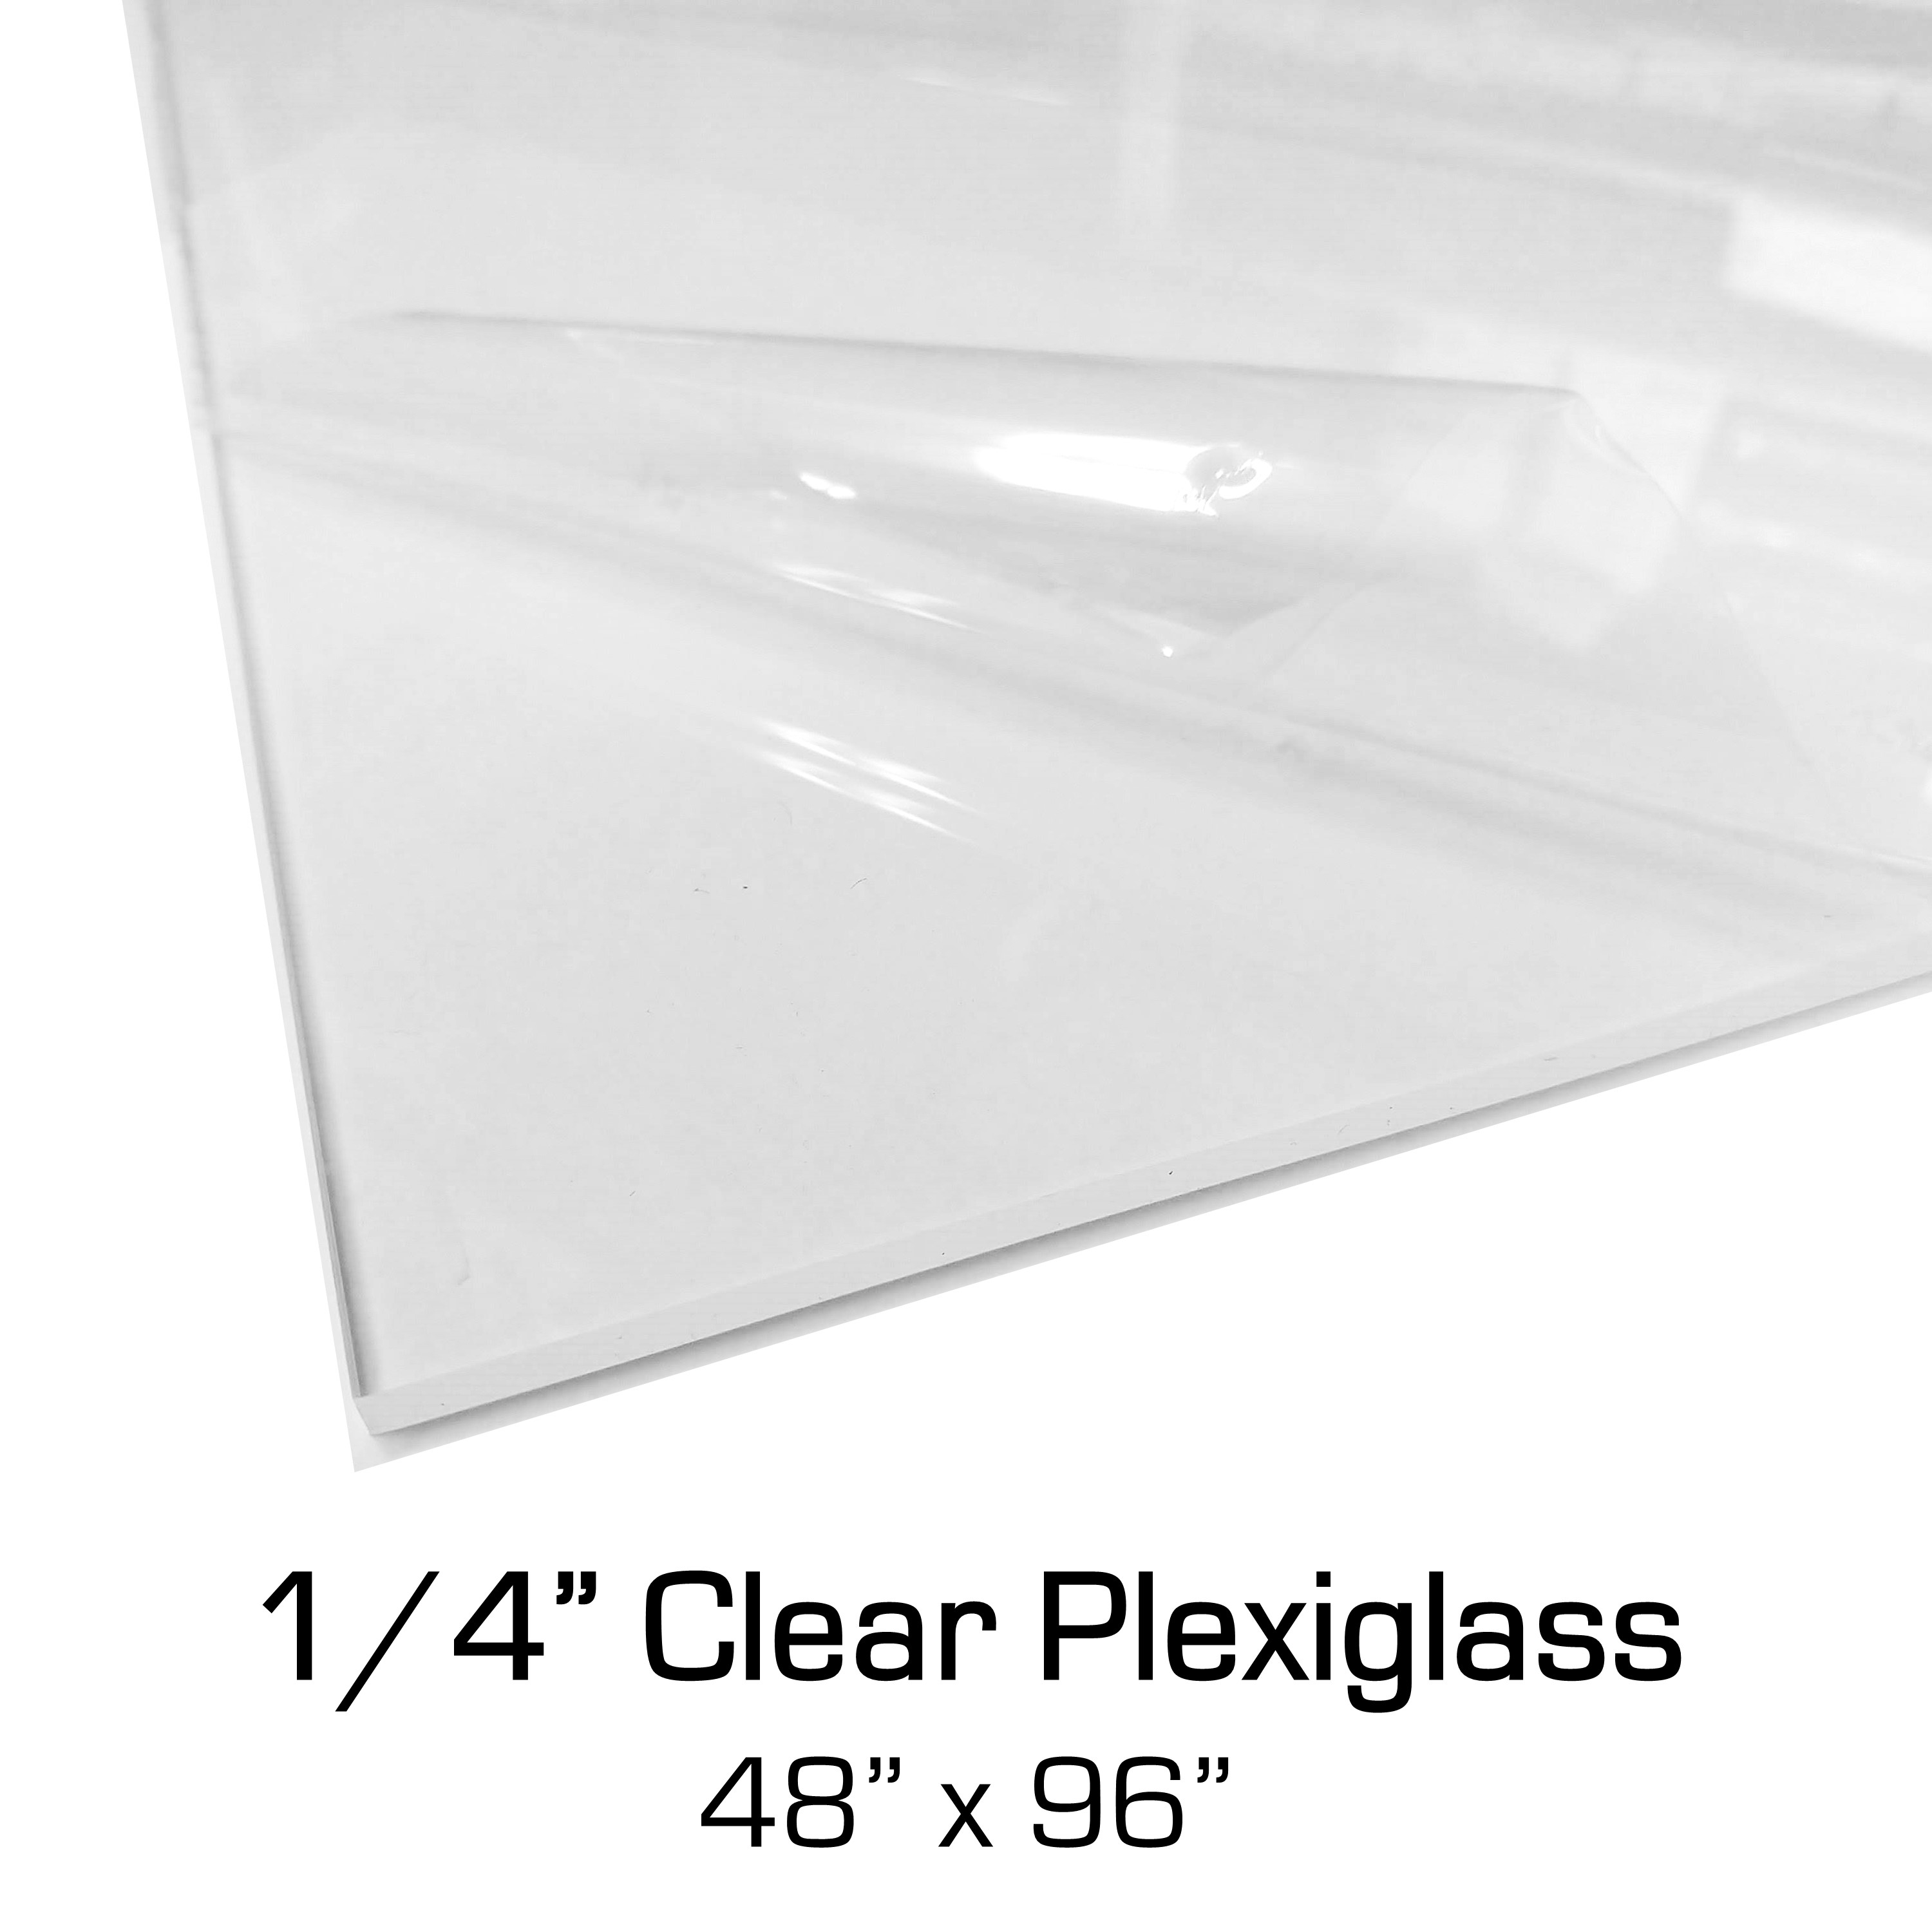 1 4 X 48 X 96 Clear Plexiglass Acrylic In Stock Covid Sneeze Guard Sheets Bulk Wholesale Available